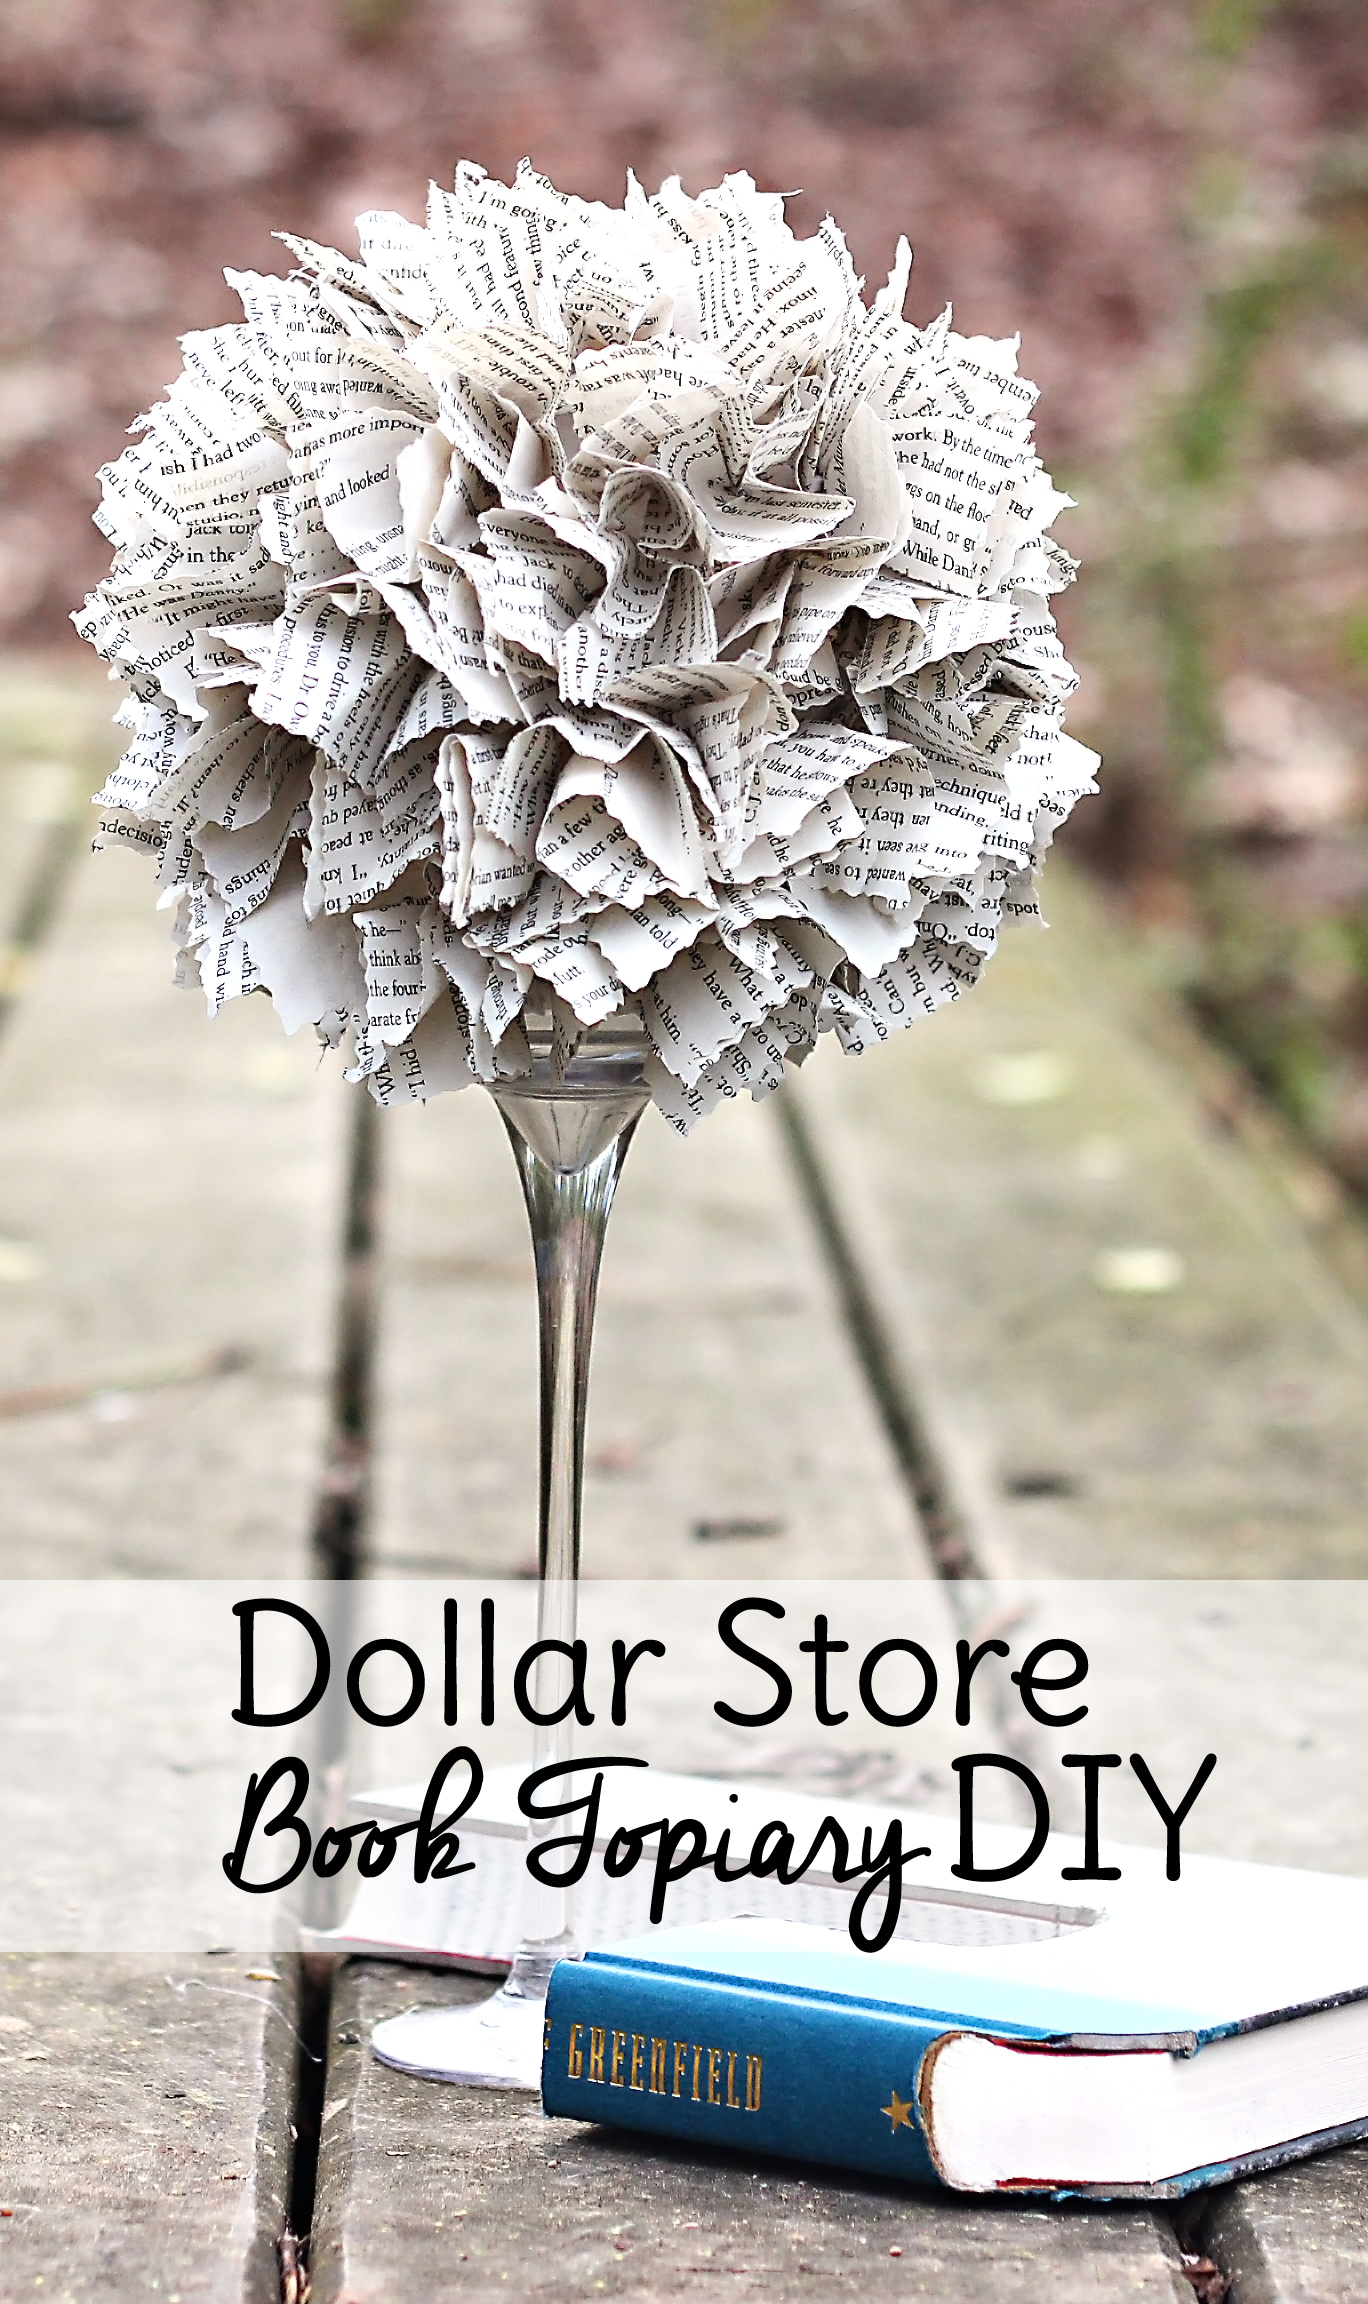 upcycle an old book into dollar store home decor diy sweet t upcycle an old book into dollar store home decor diy